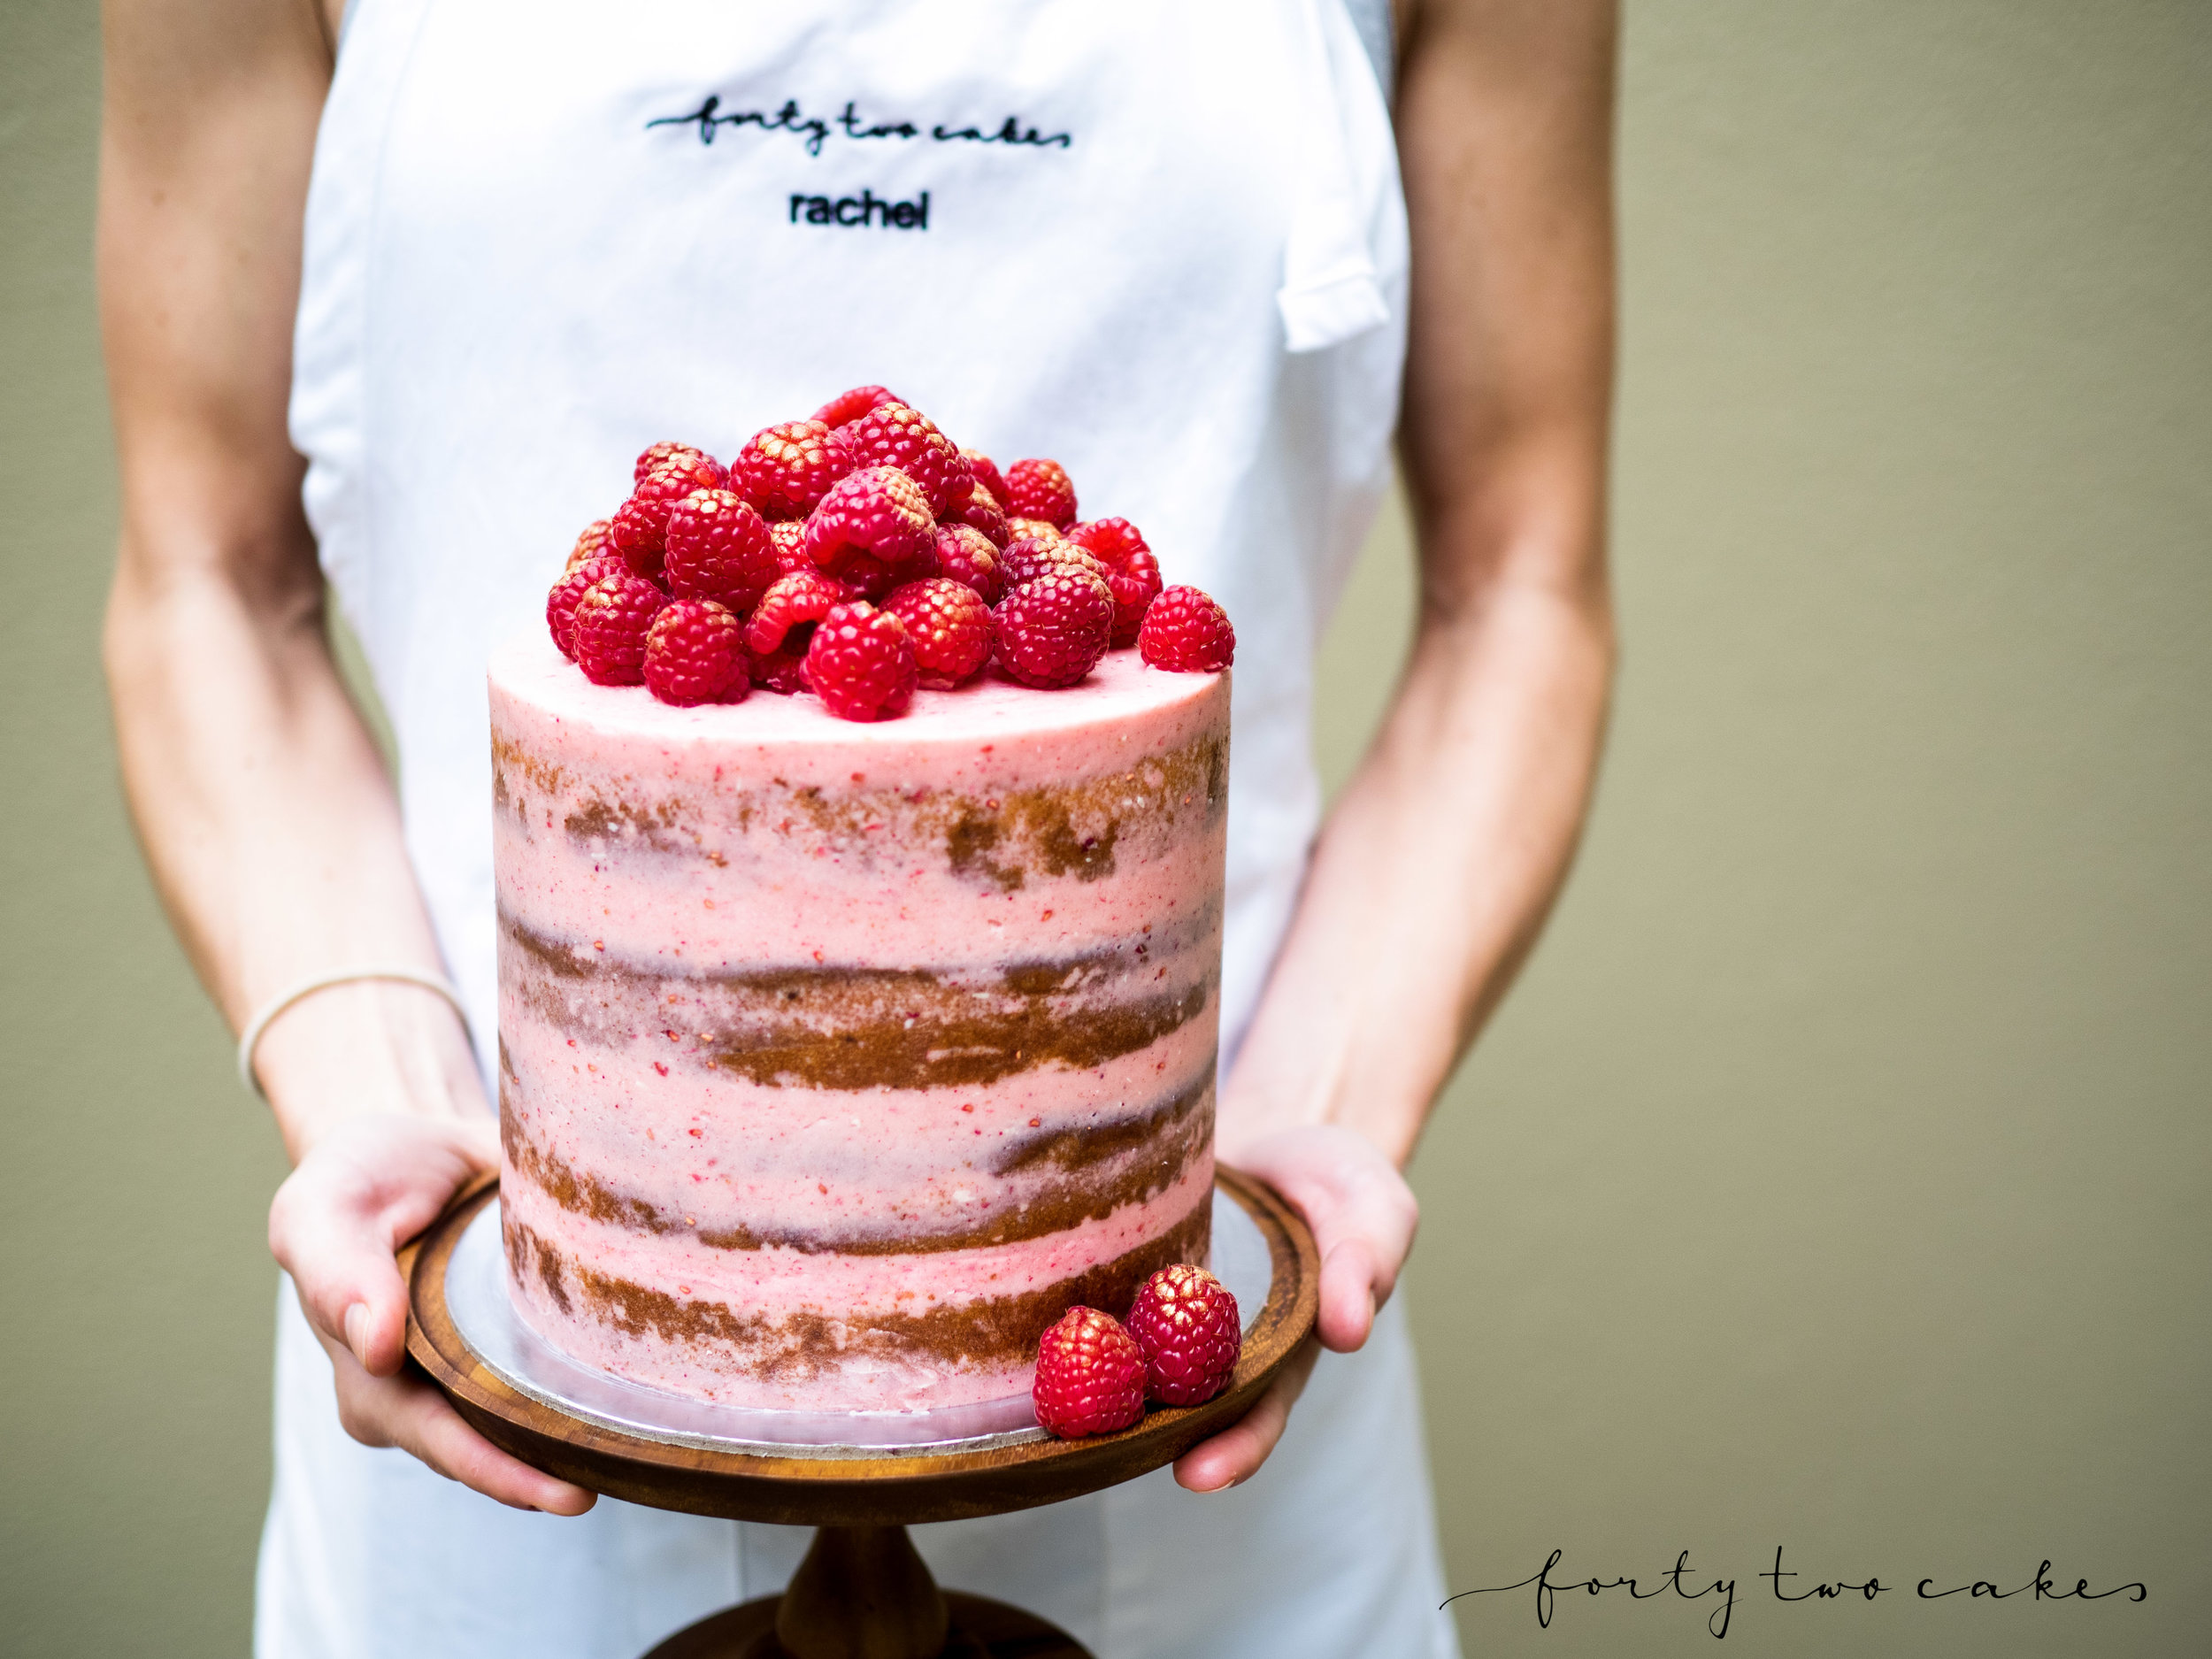 Forty-Two Cakes - Seminaked-08.jpg